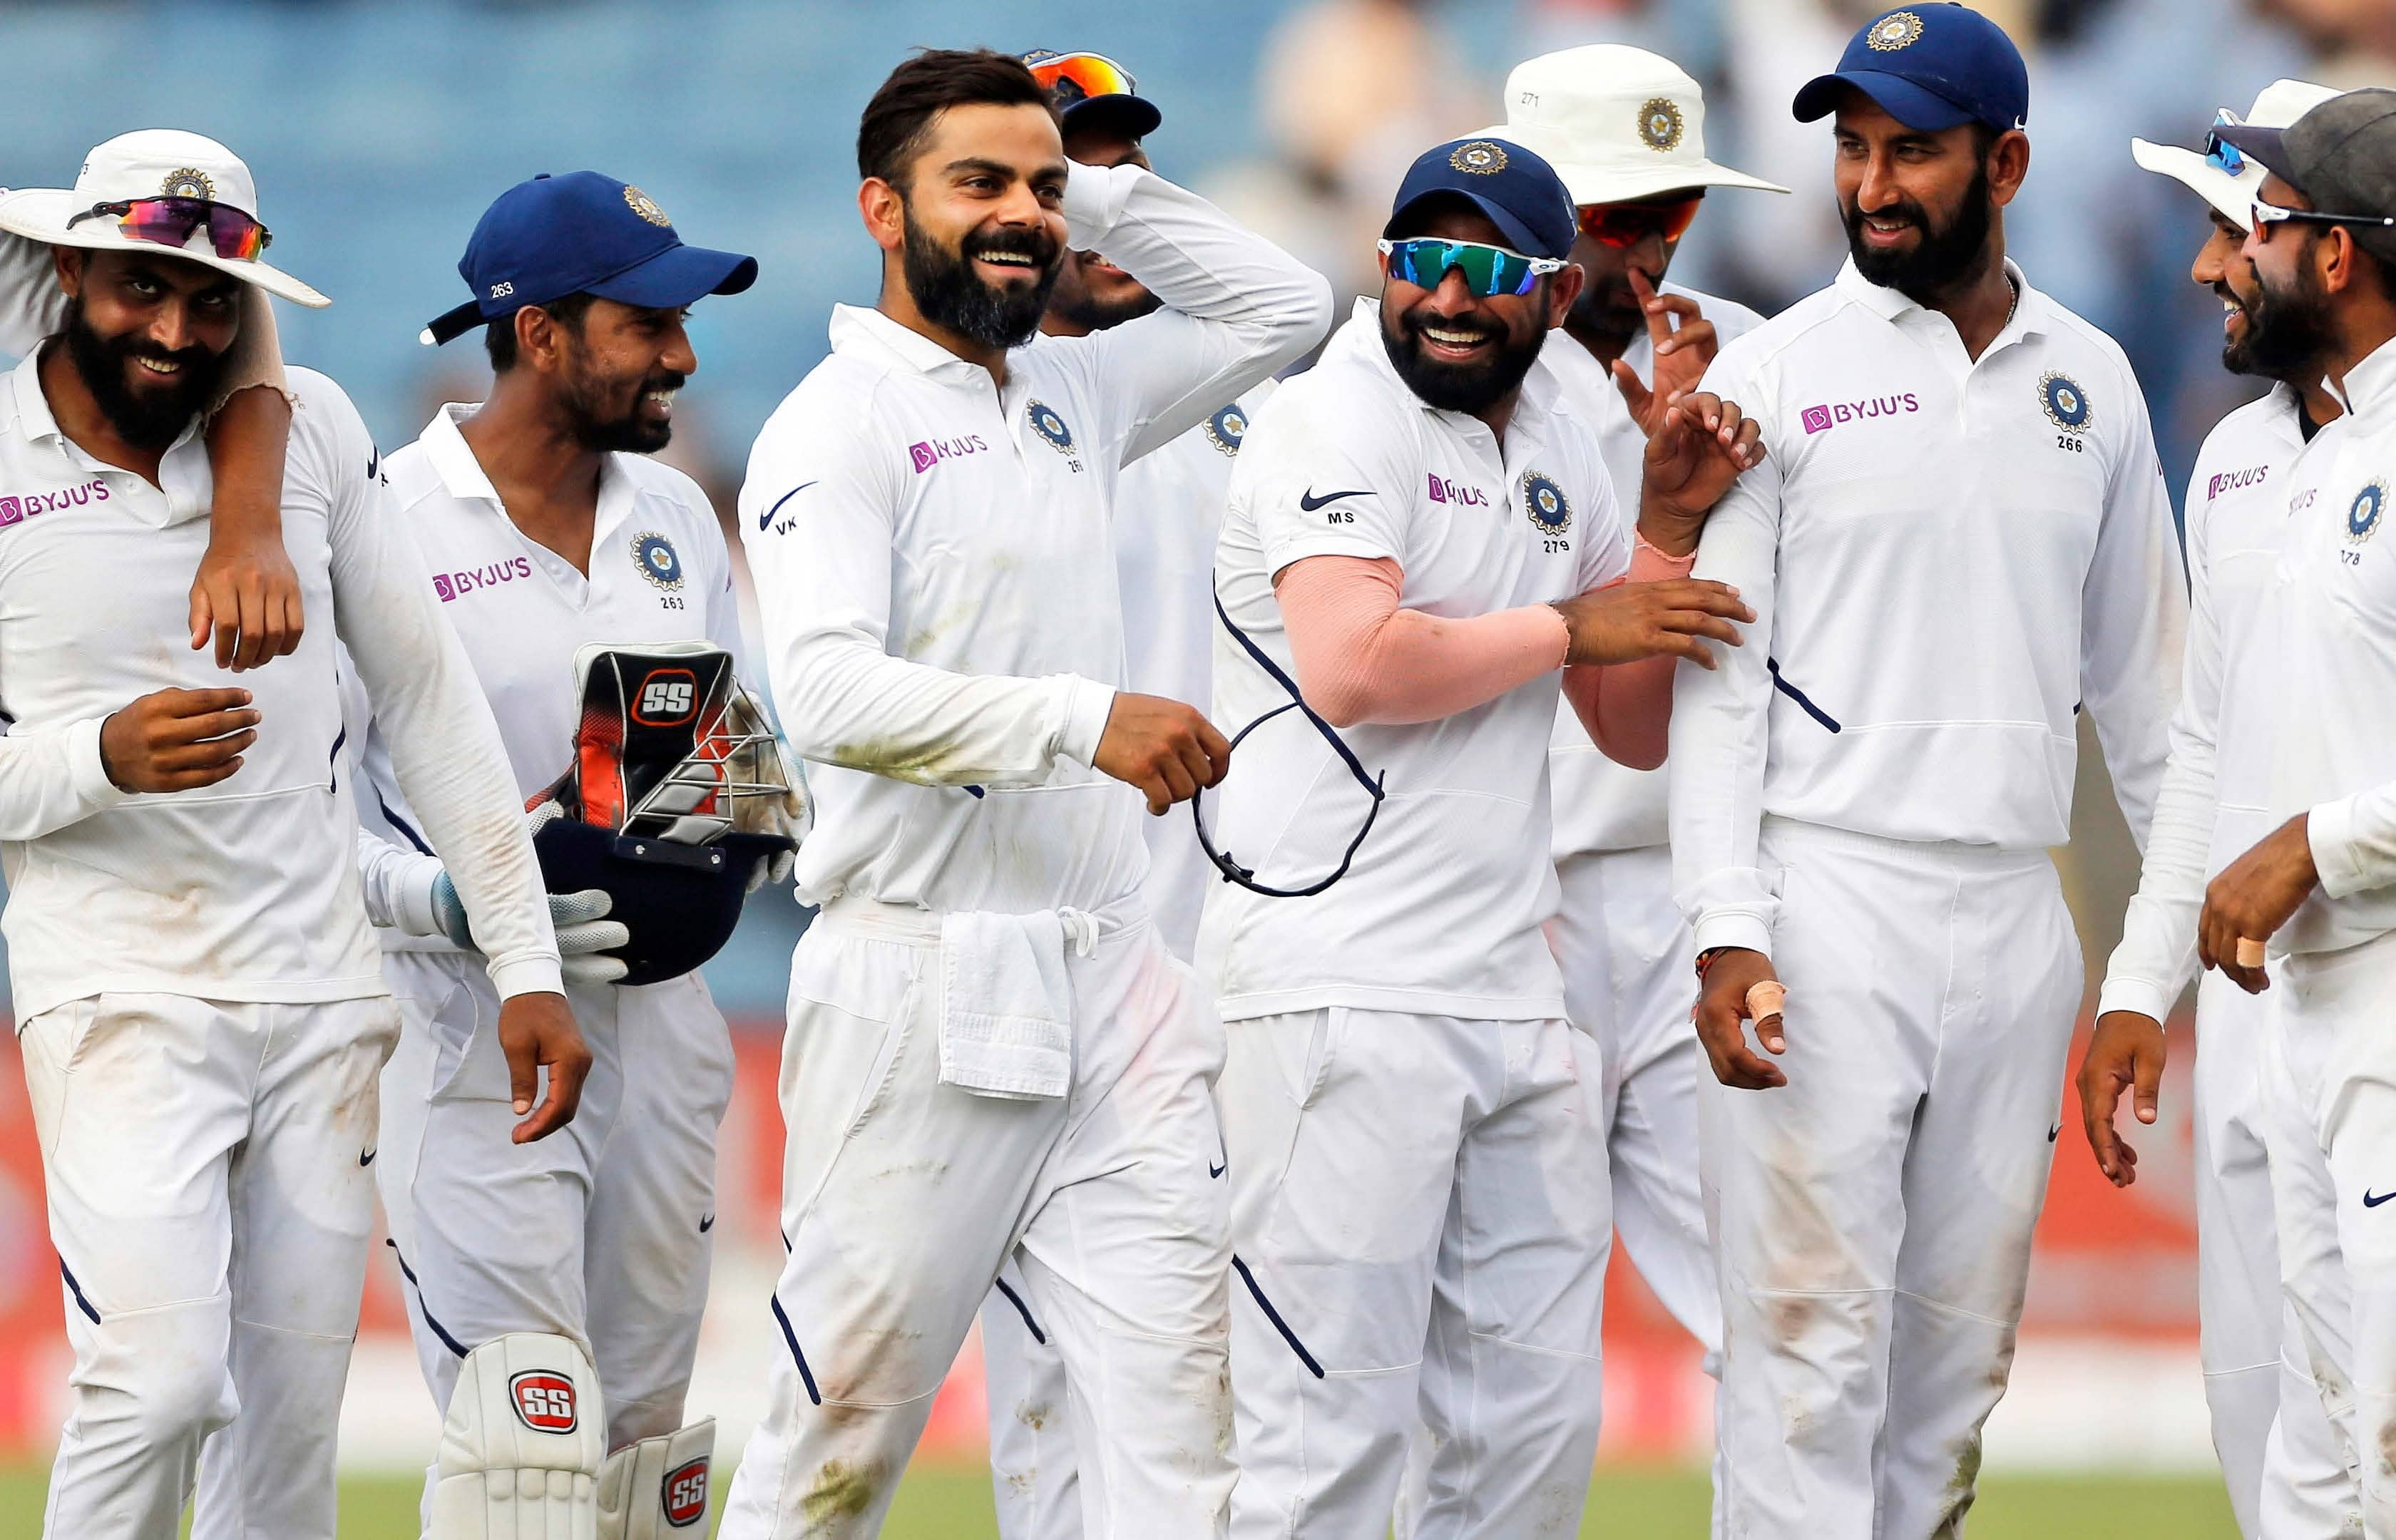 Indian Cricket In The Midst Of An Even More Successful Era